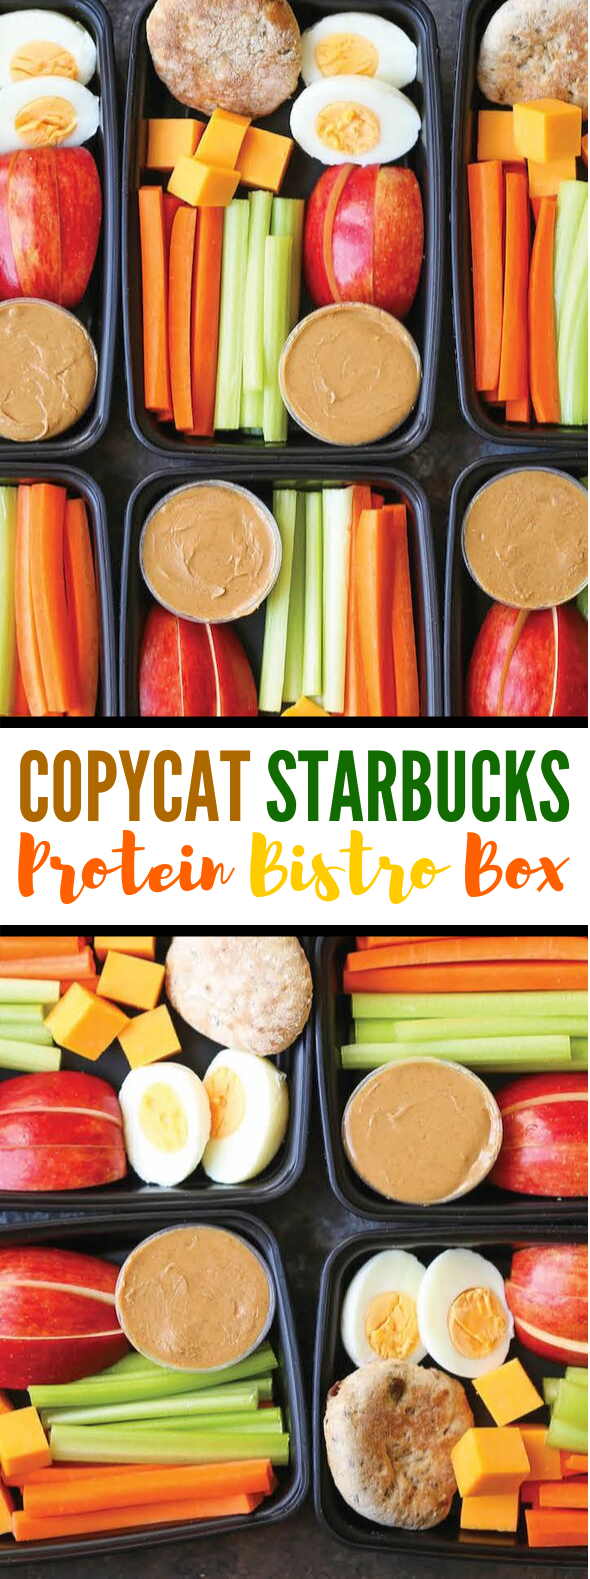 COPYCAT STARBUCKS PROTEIN BISTRO BOX #healthylunch #dietrecipes